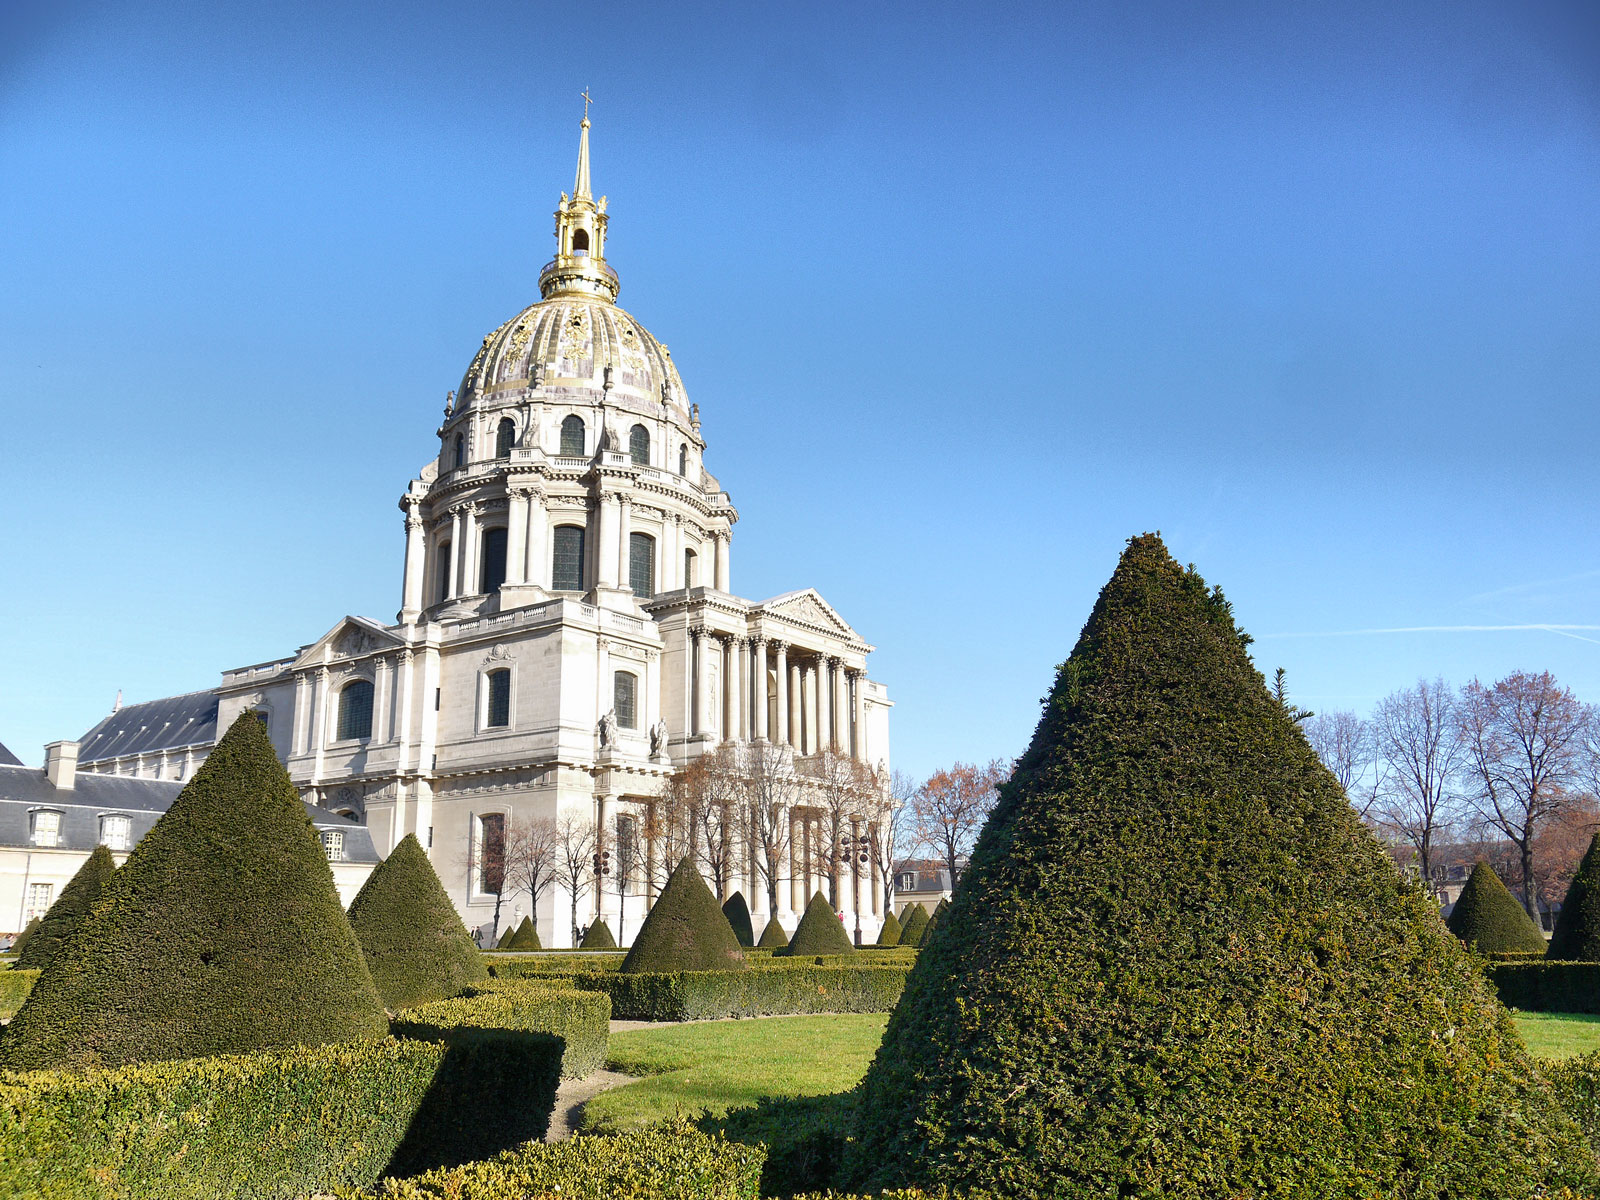 Les Invalides: Exploring the Beautiful Gardens - Paris, France